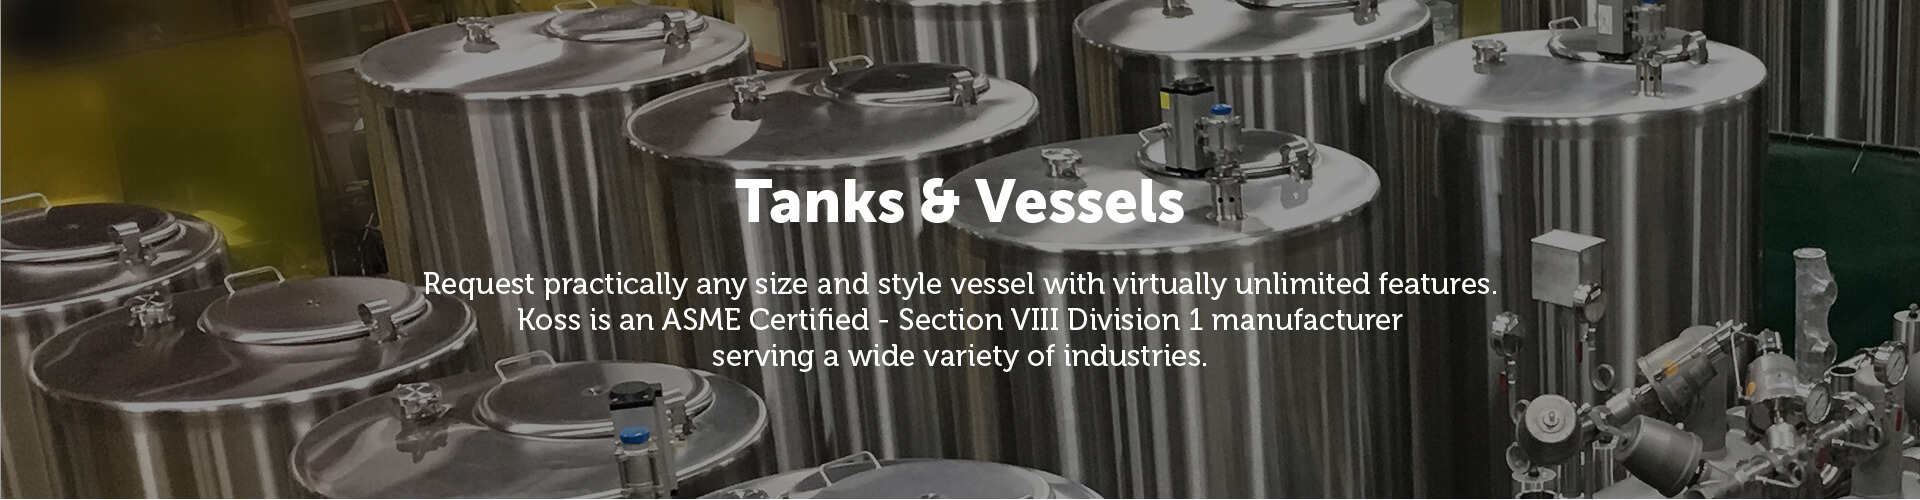 Koss Tanks & Vessels